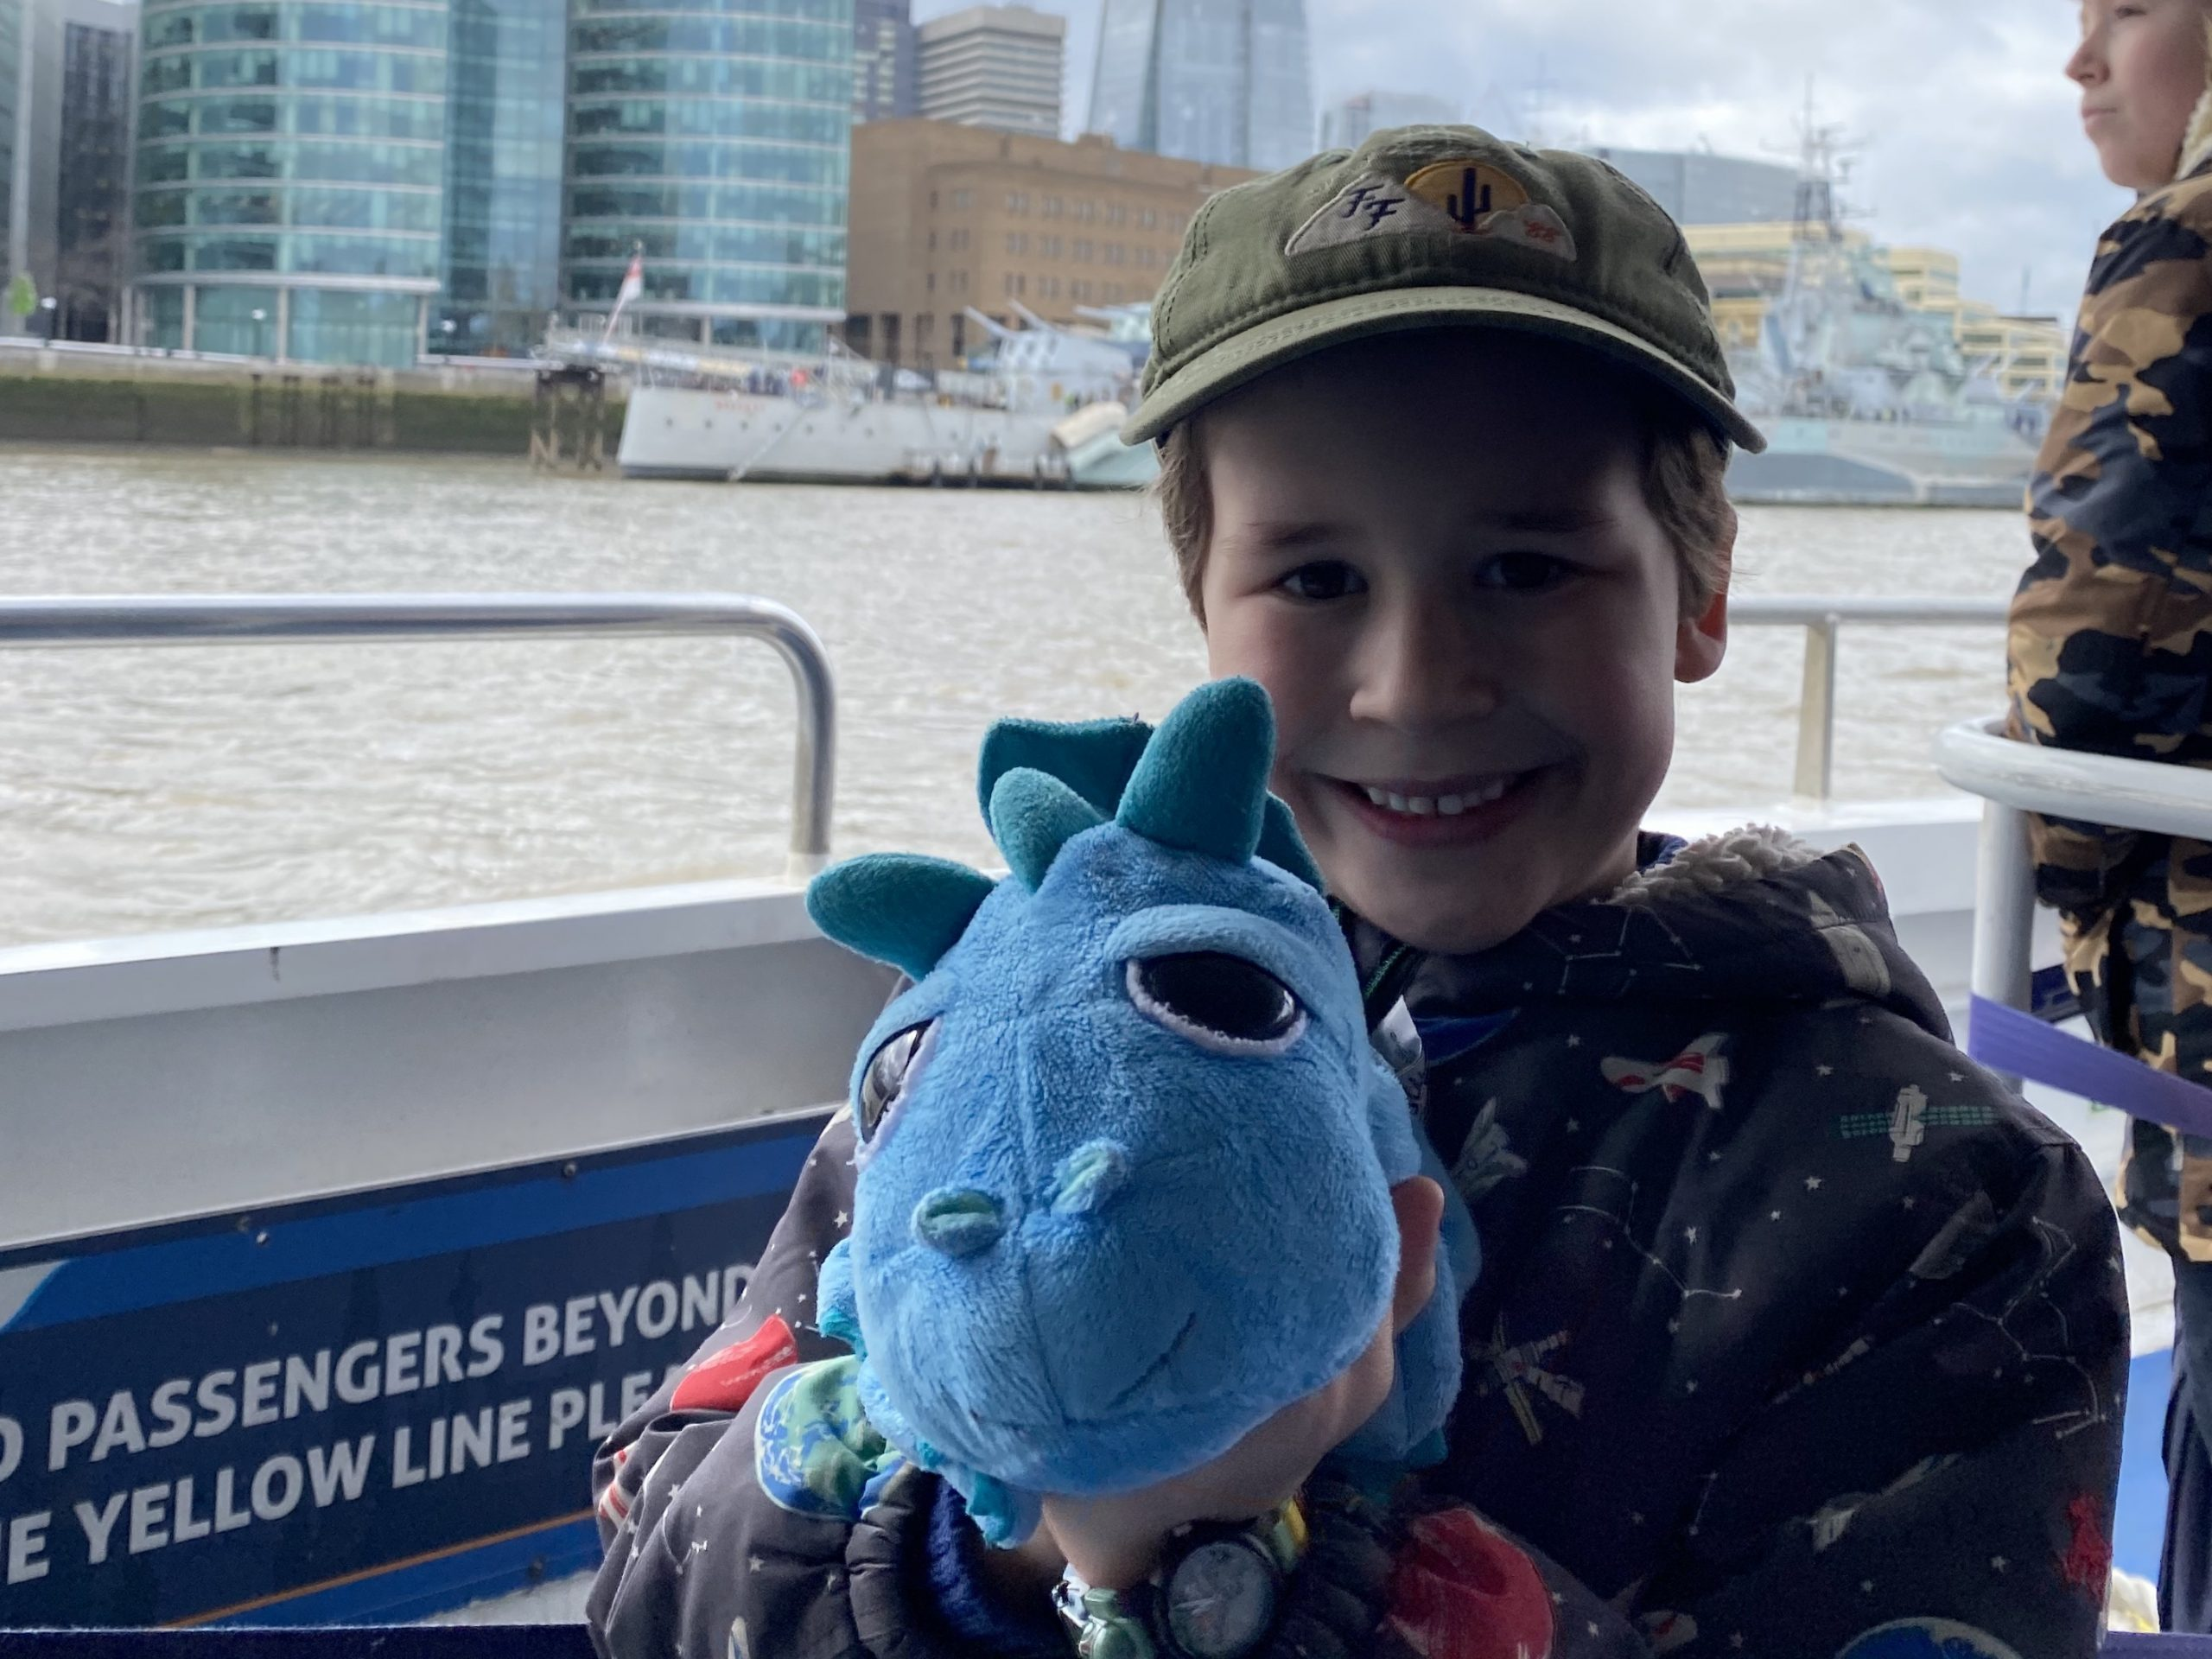 Family life in London. A boy on a boat in the Thames with a cuddly toy dragon